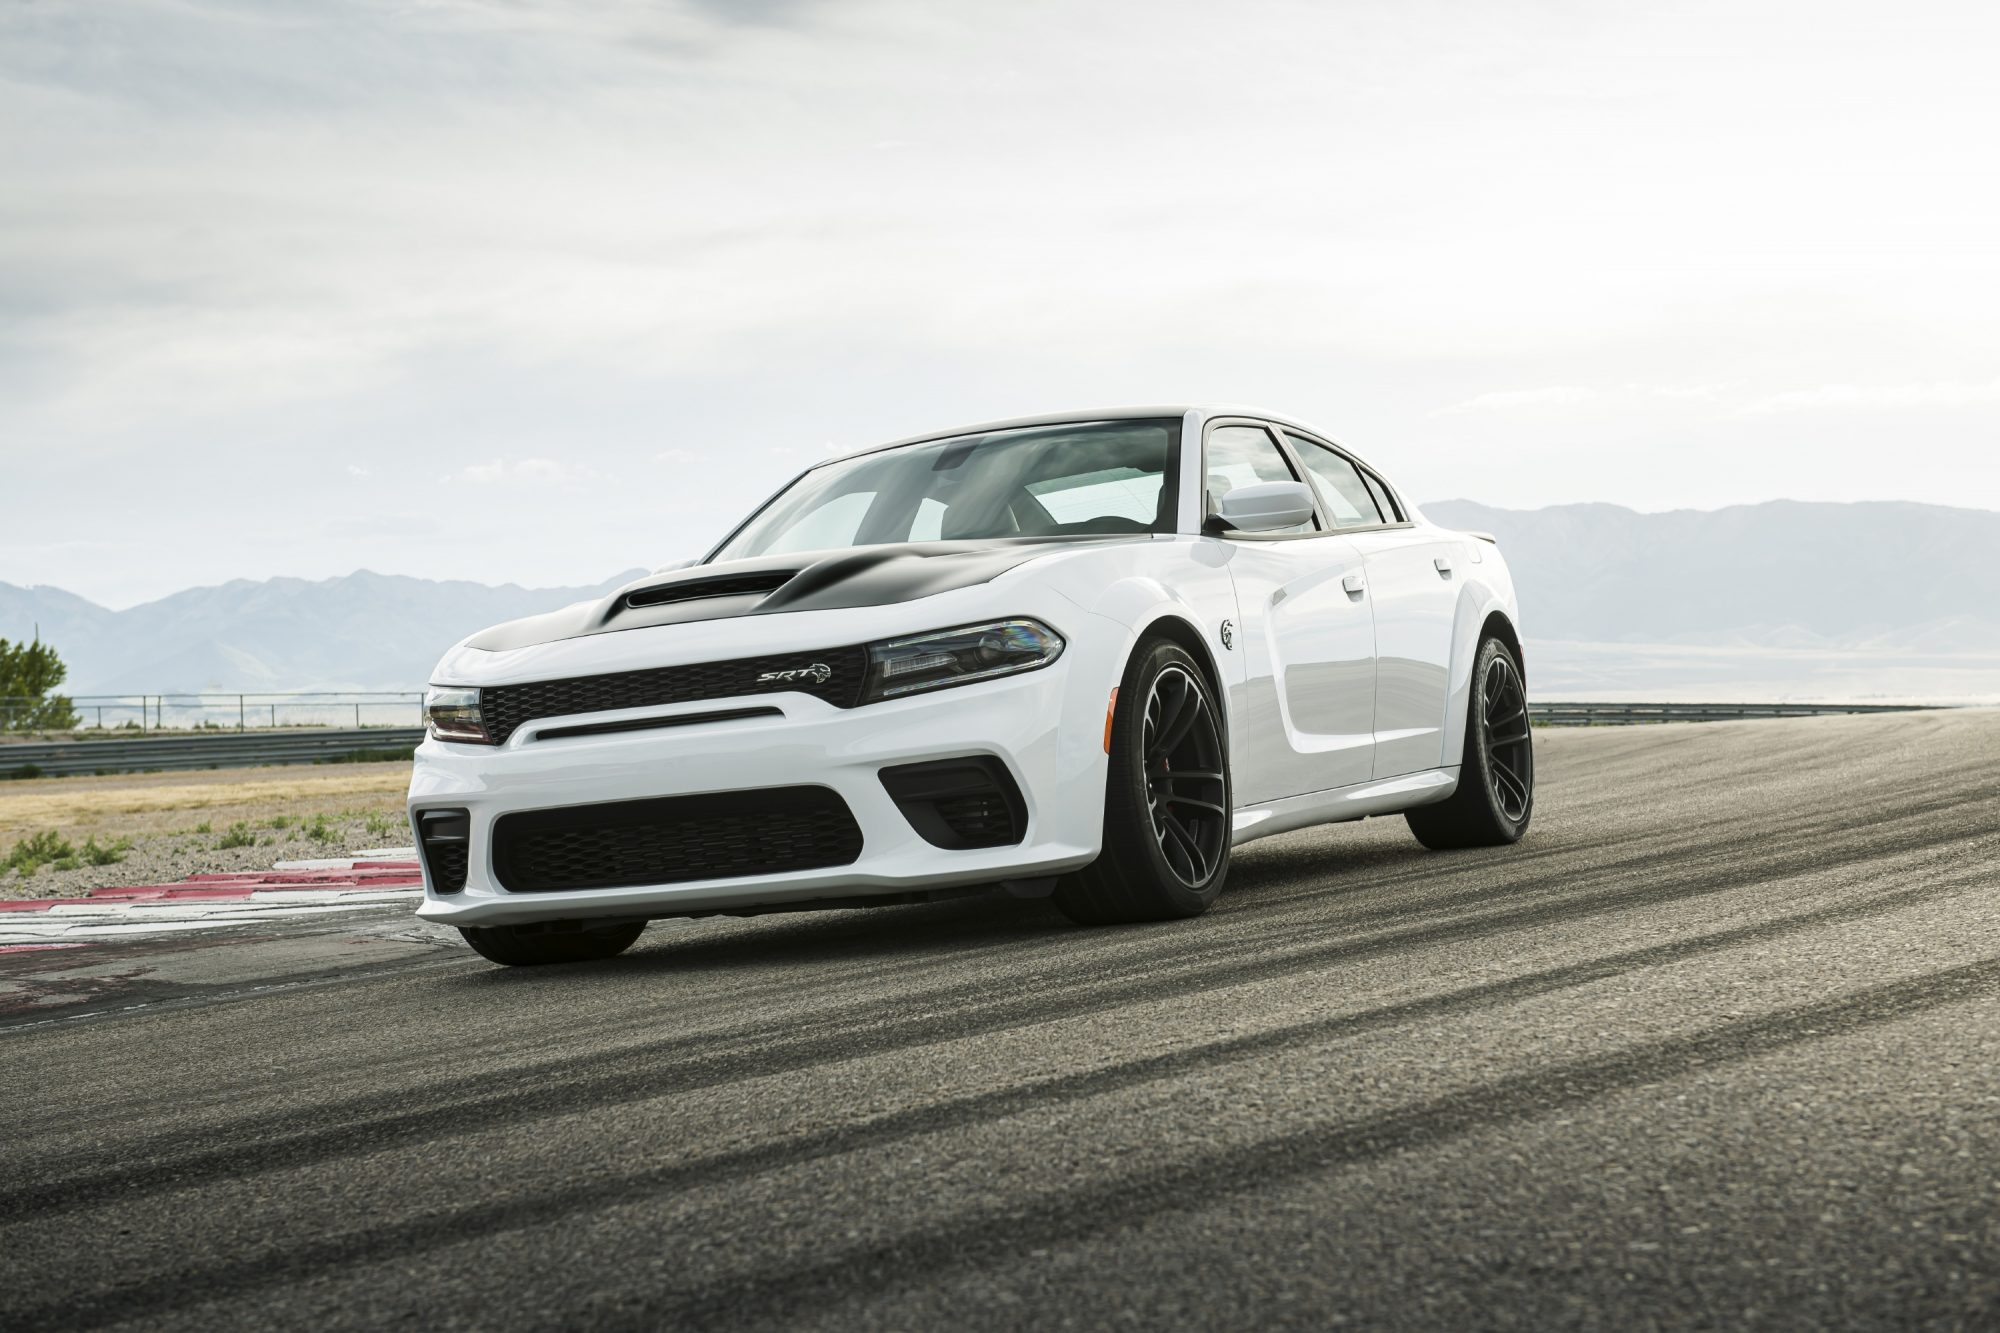 Dodge Charger SRT Hellcat Redeye - 2020 - front / avant - on track / sur circuit